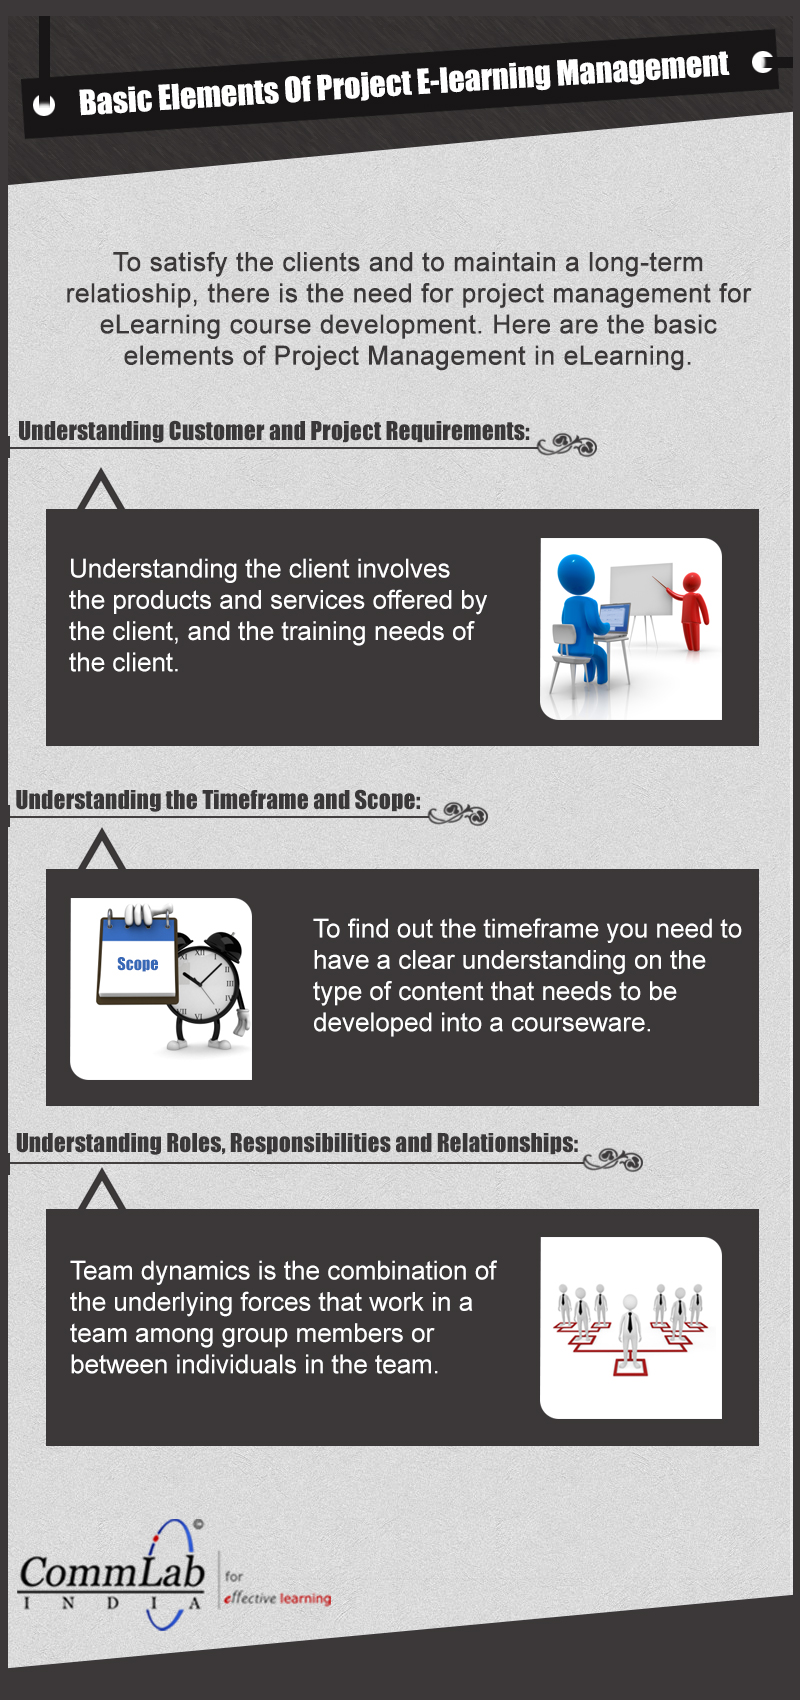 Basics of E-learning Project Management – An Infographic